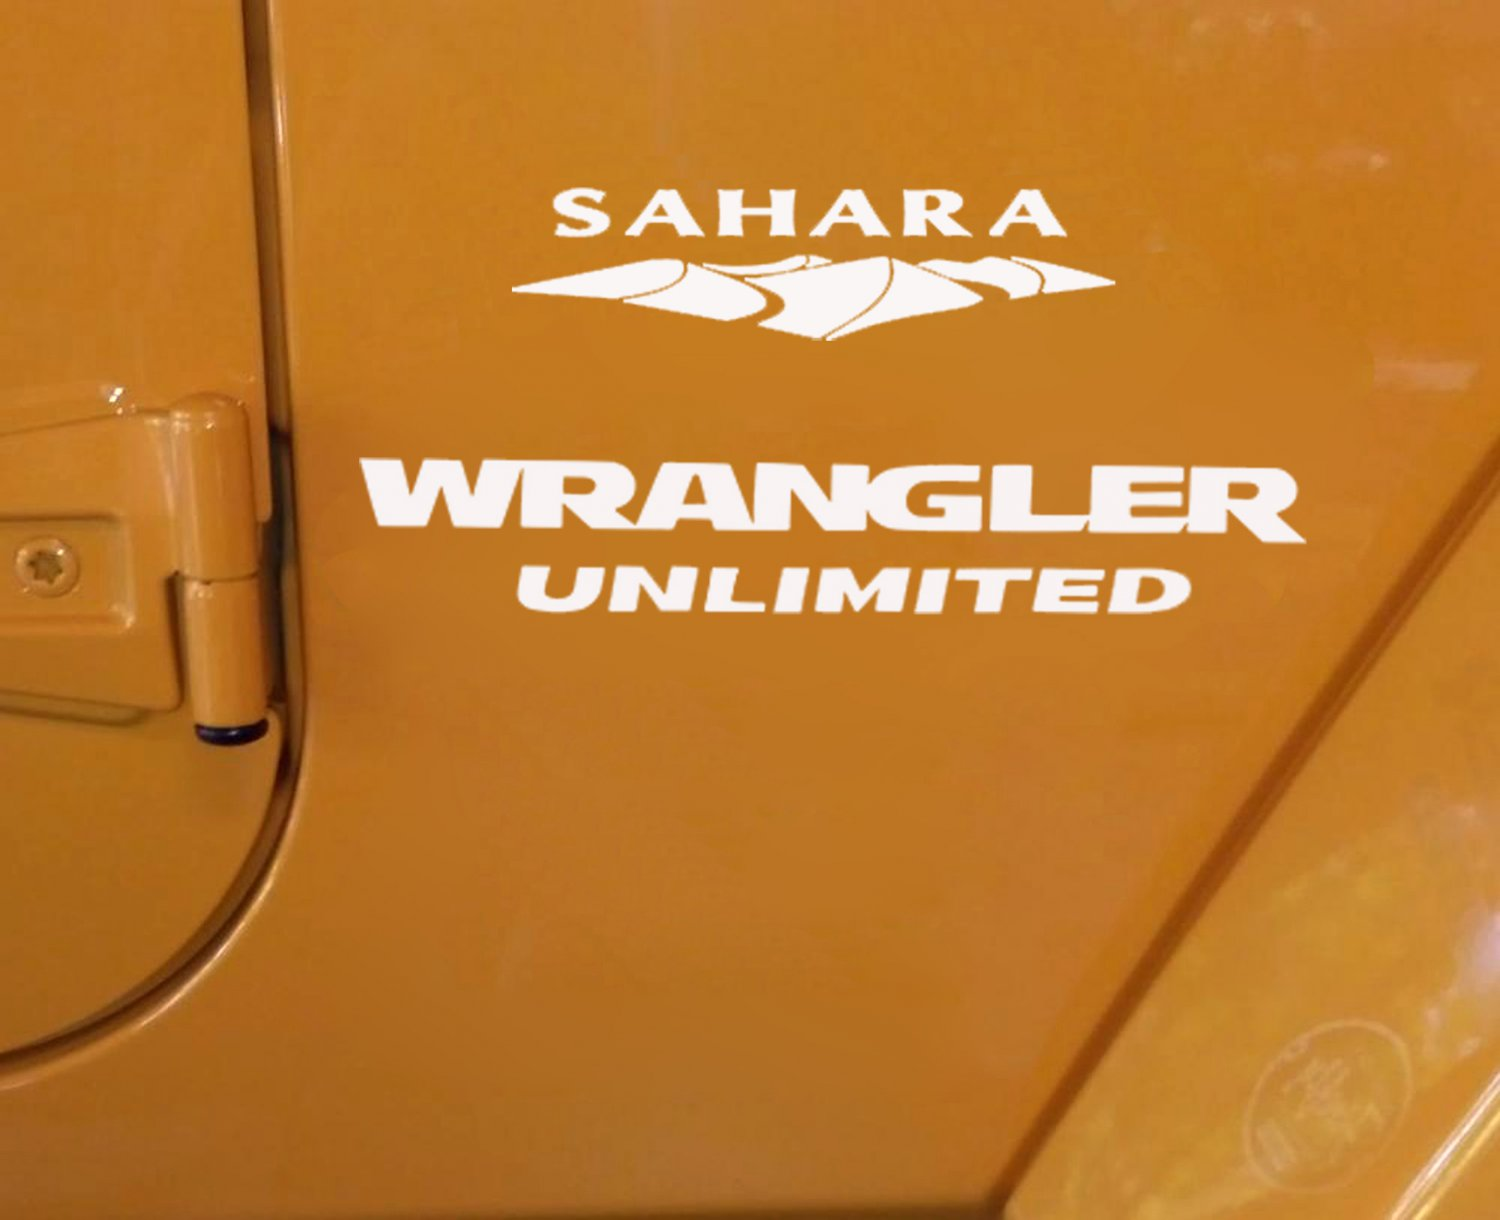 Jeep Wrangler Unlimited Sahara Replacement Stock Logo Full Set Decals- White